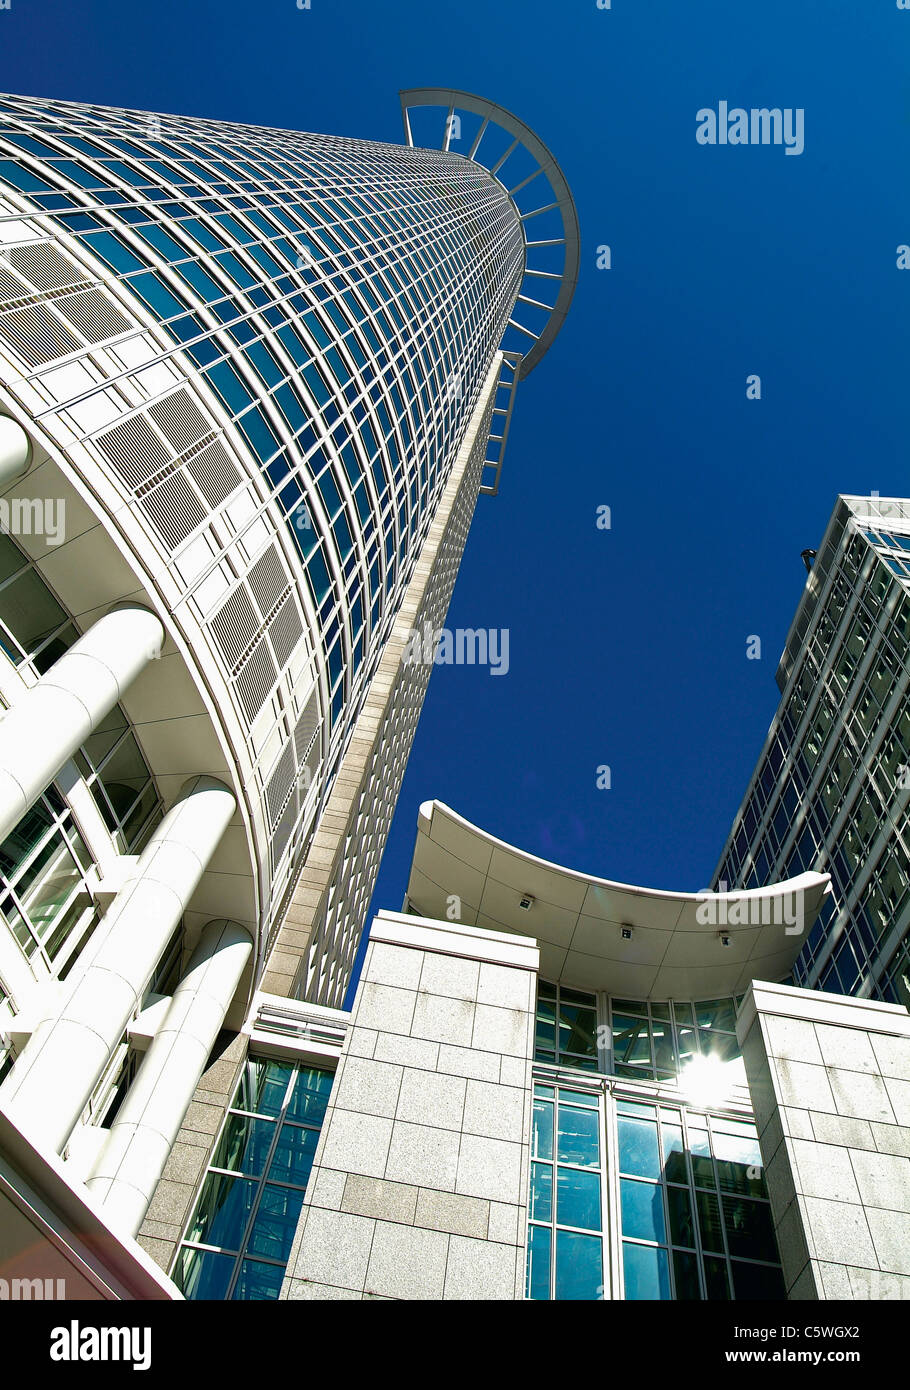 Germany, Frankfurt, View of bank with skyscraper Stock Photo